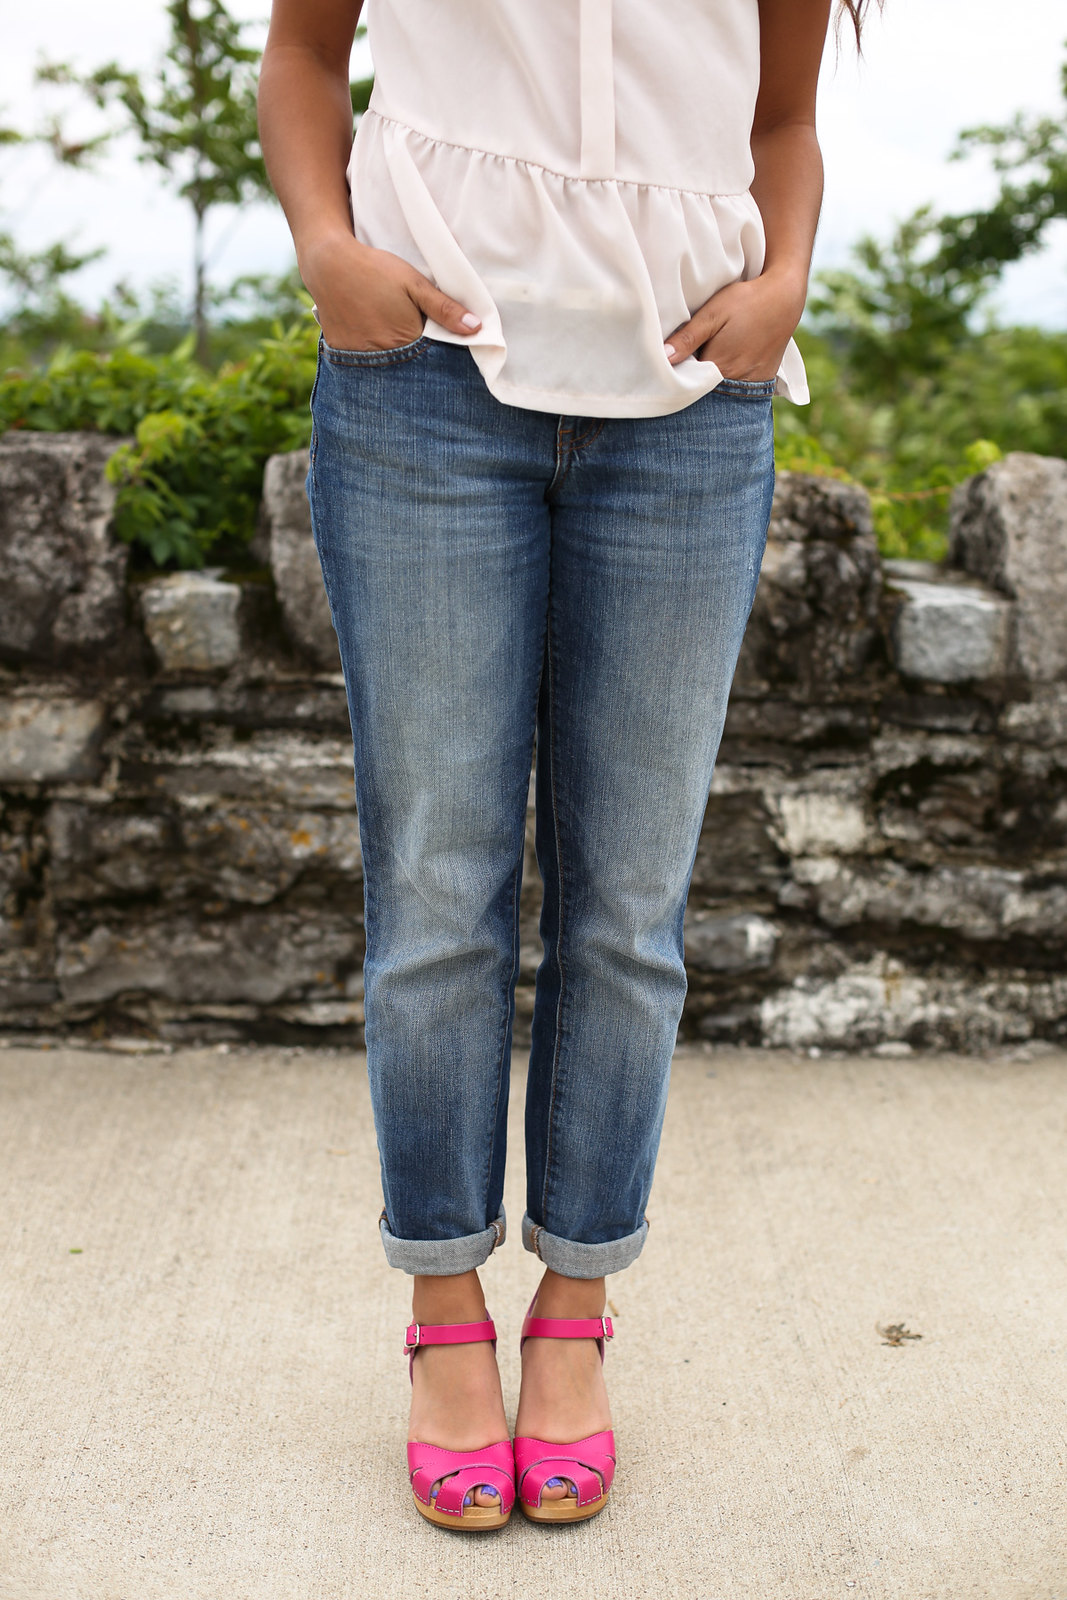 Priya the Blog, Nashville style blog, pink Swedish Hasbeen clogs, boyfriend jeans, blush chiffon blouse, Pink Clog Warm-Up